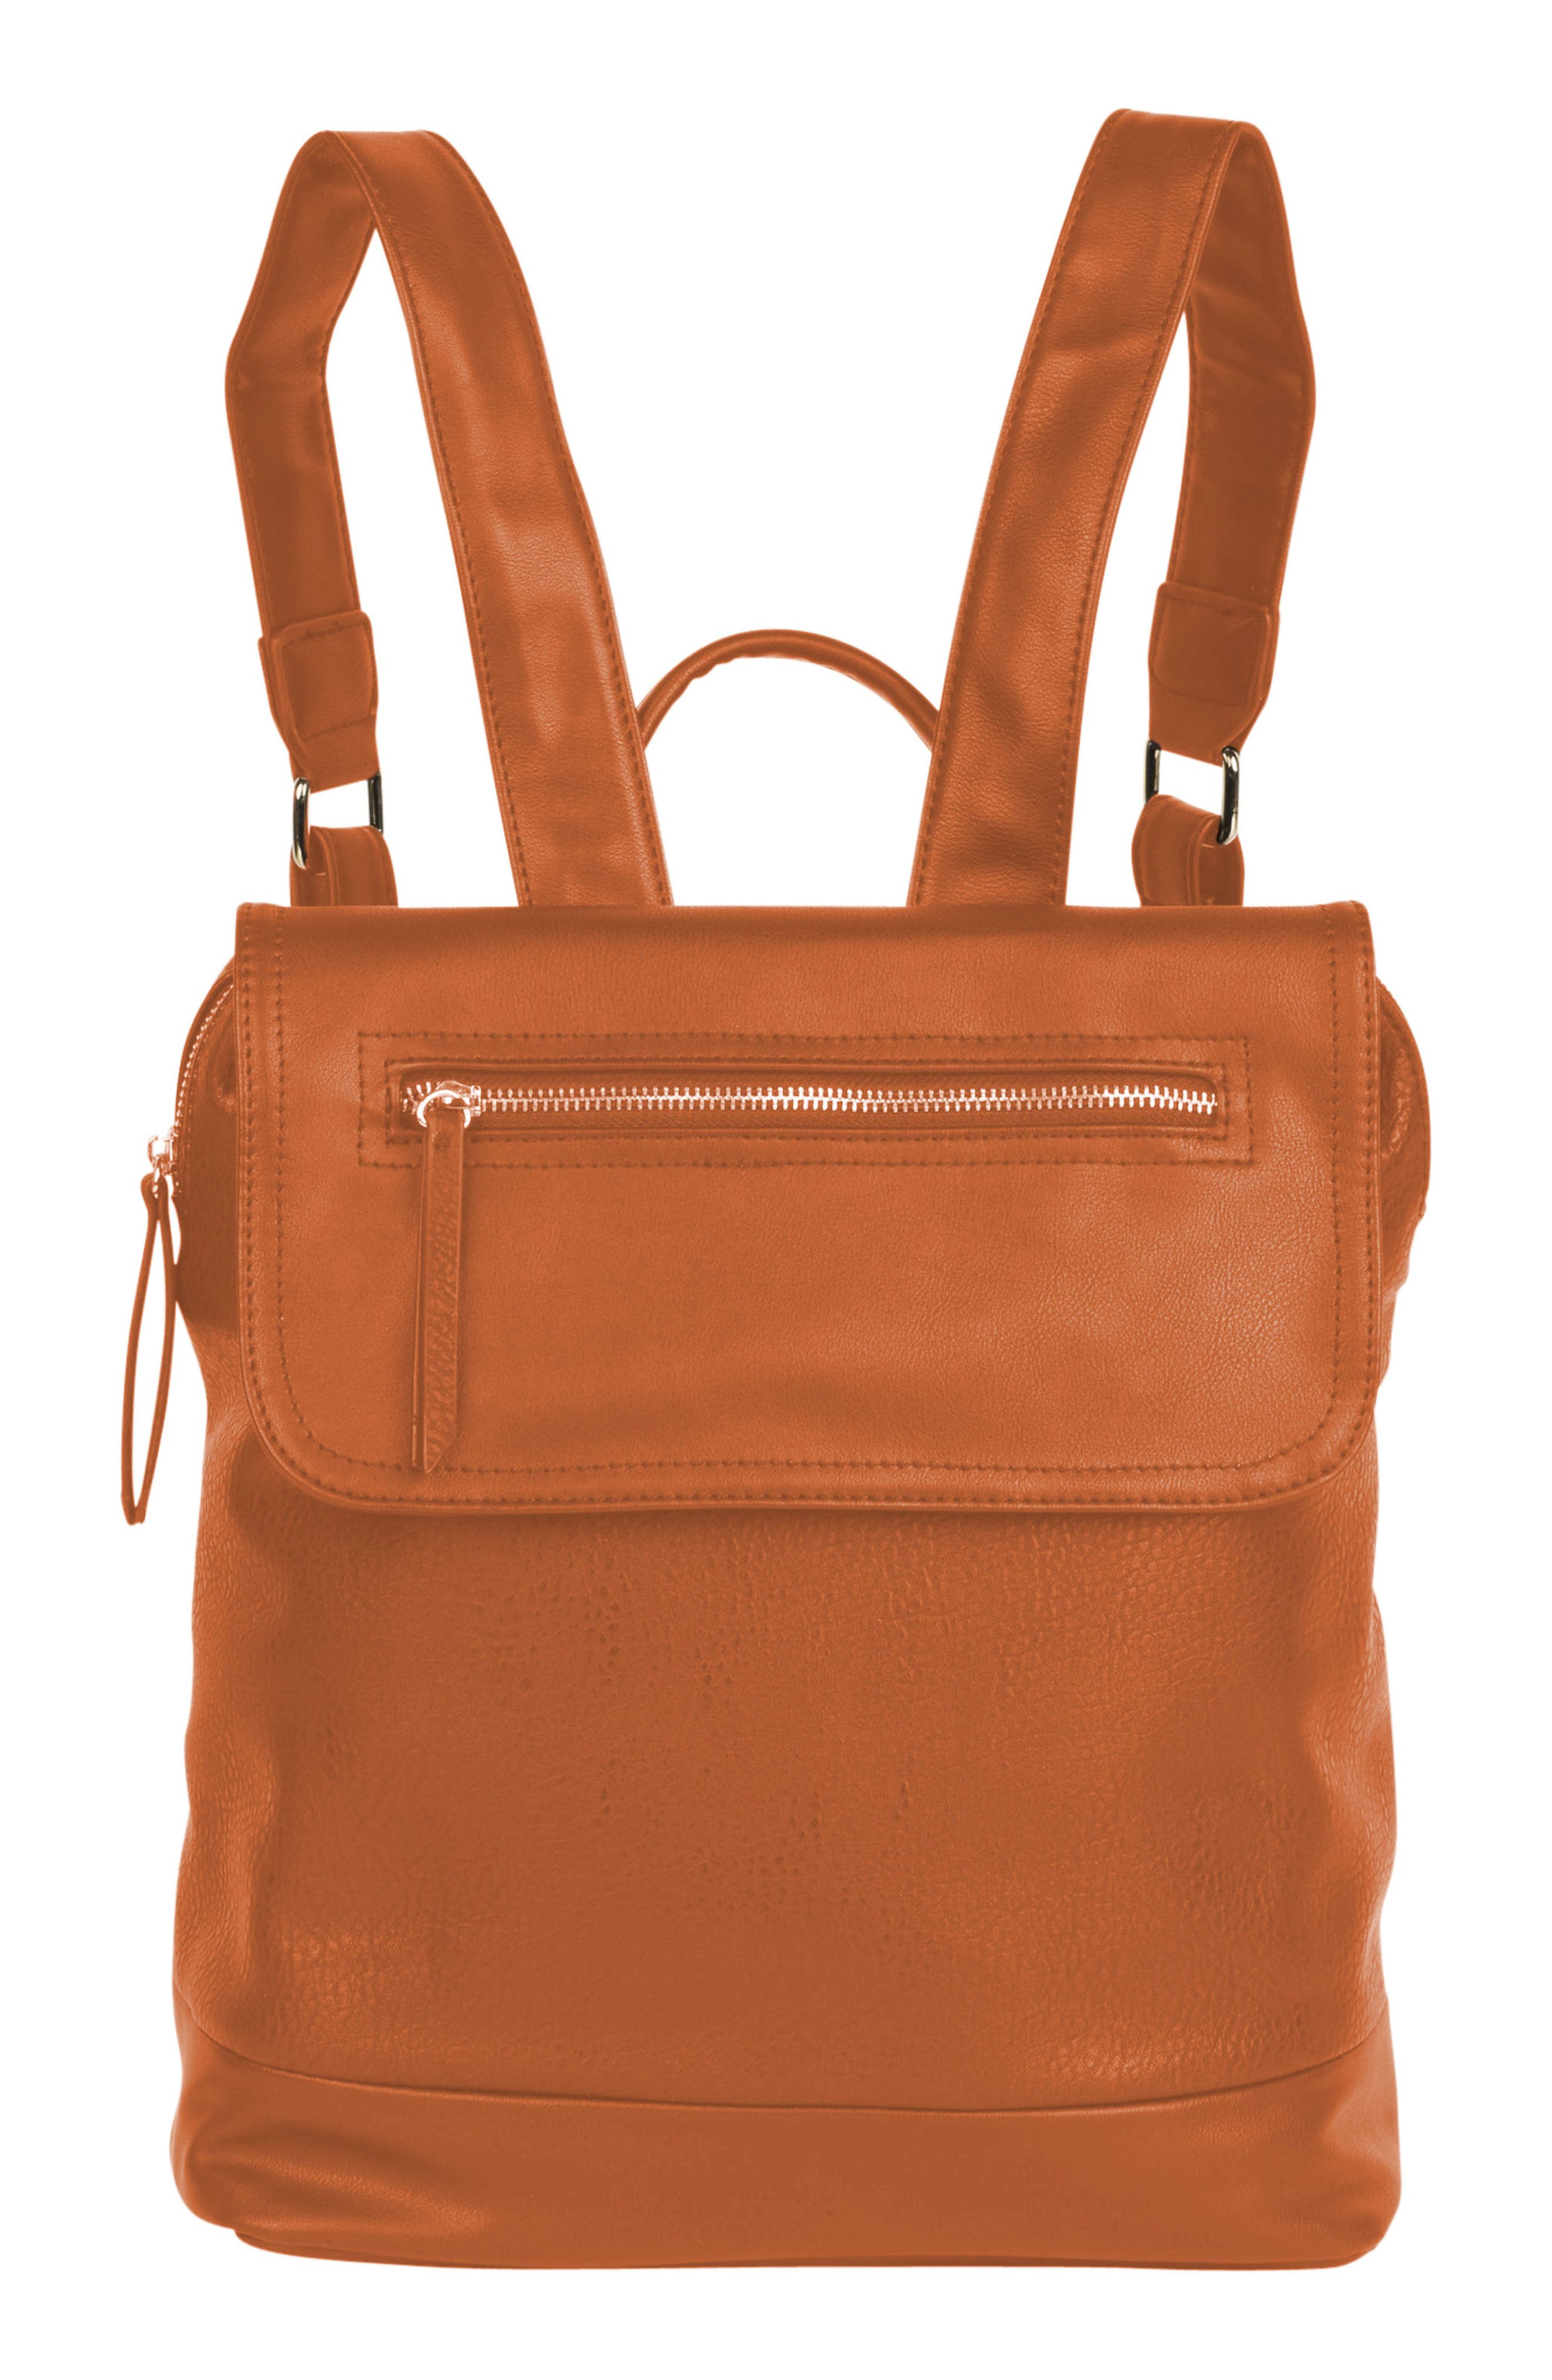 LOVESOME VEGAN LEATHER BACKPACK - BROWN